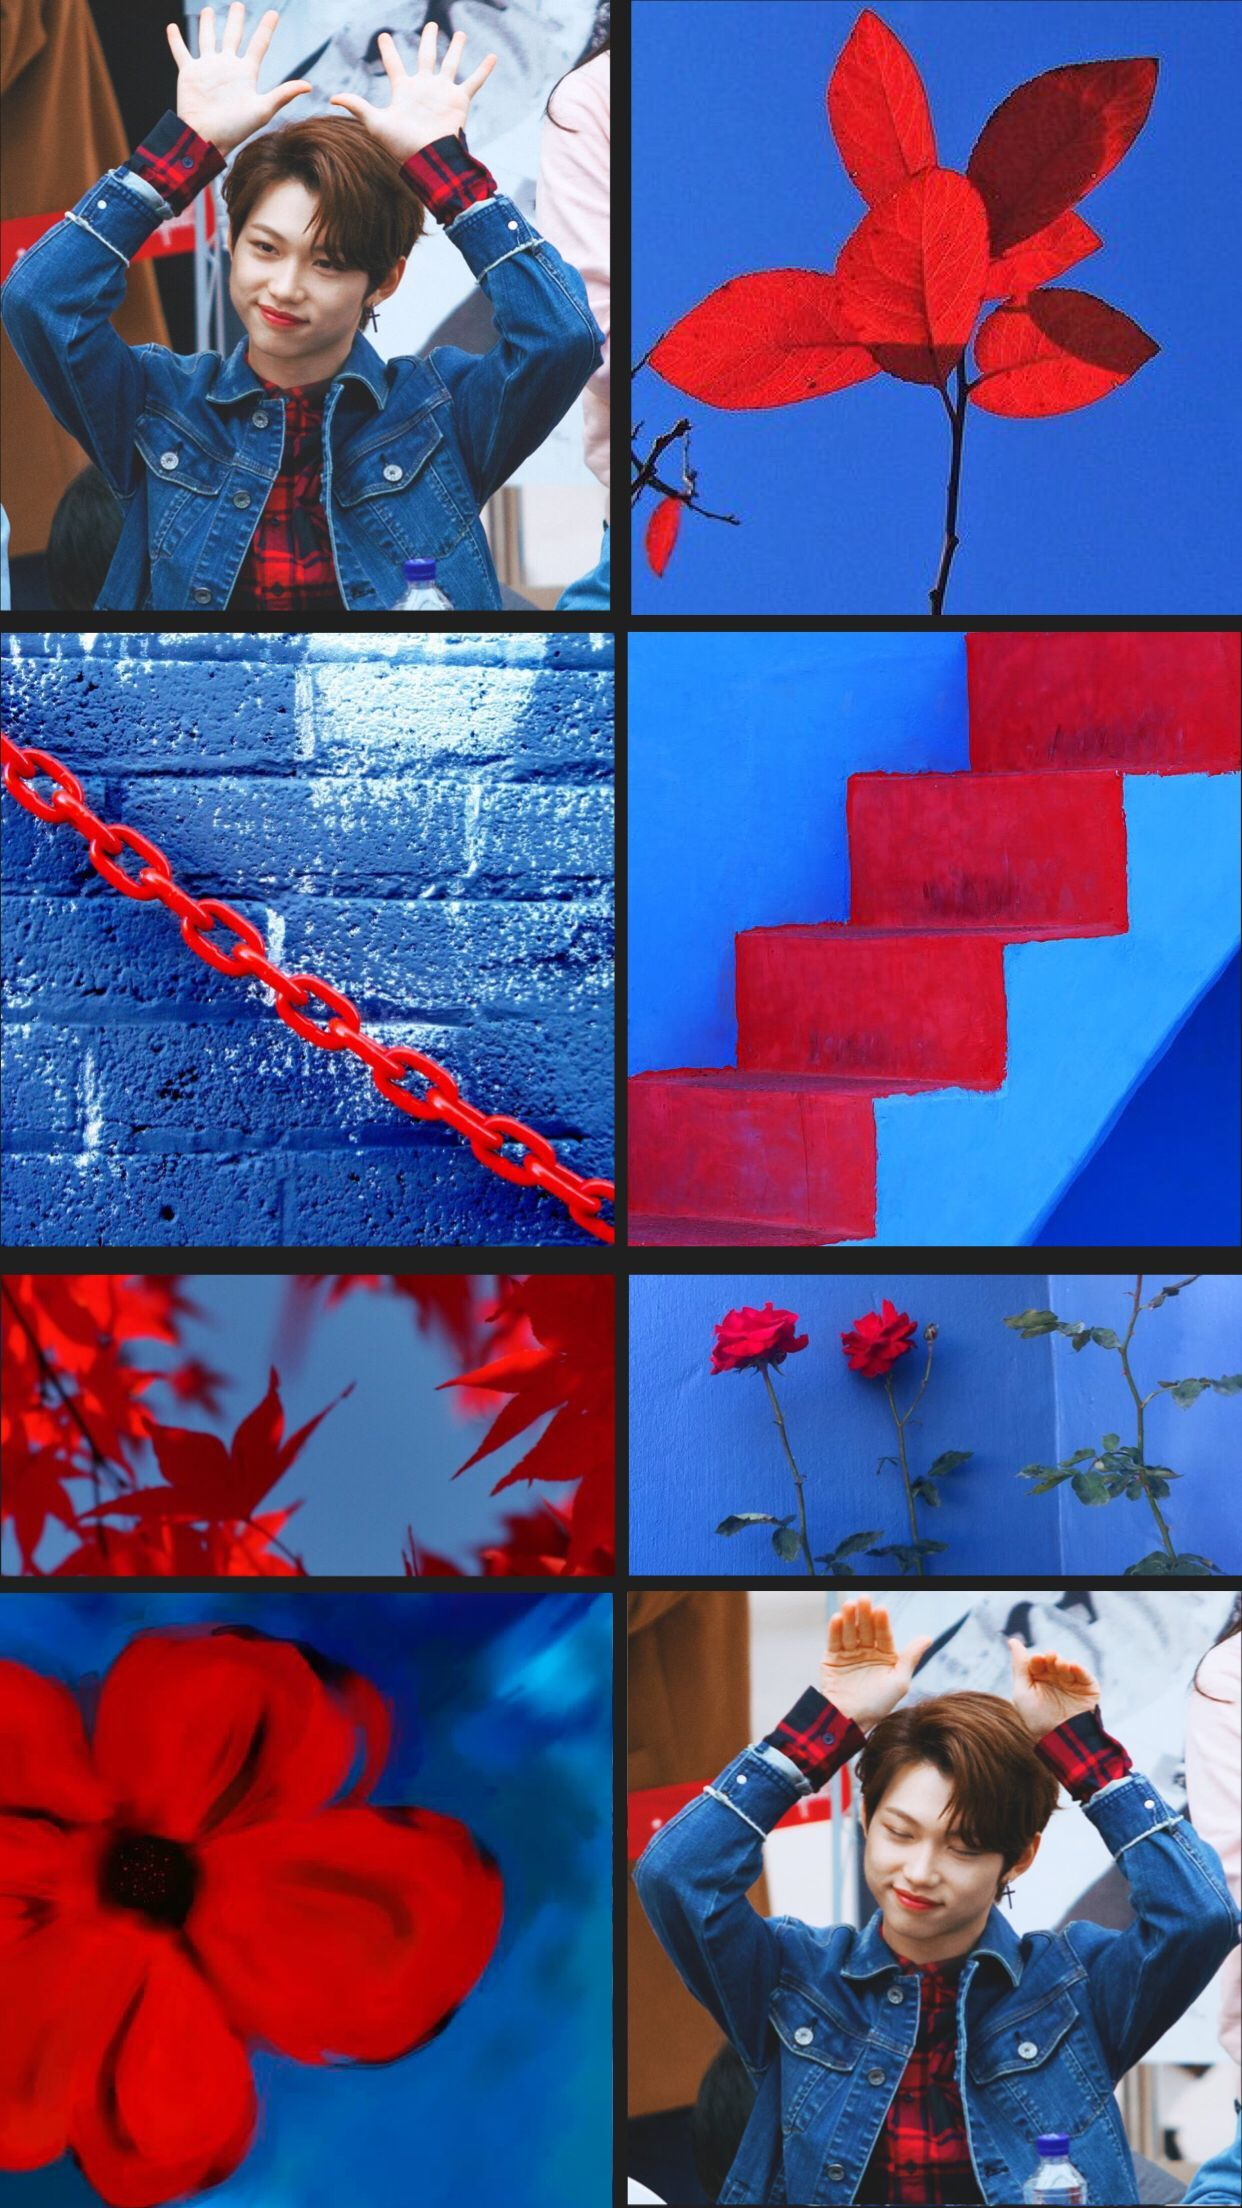 Red And Blue Aesthetic Wallpapers Top Free Red And Blue Aesthetic Backgrounds Wallpaperaccess